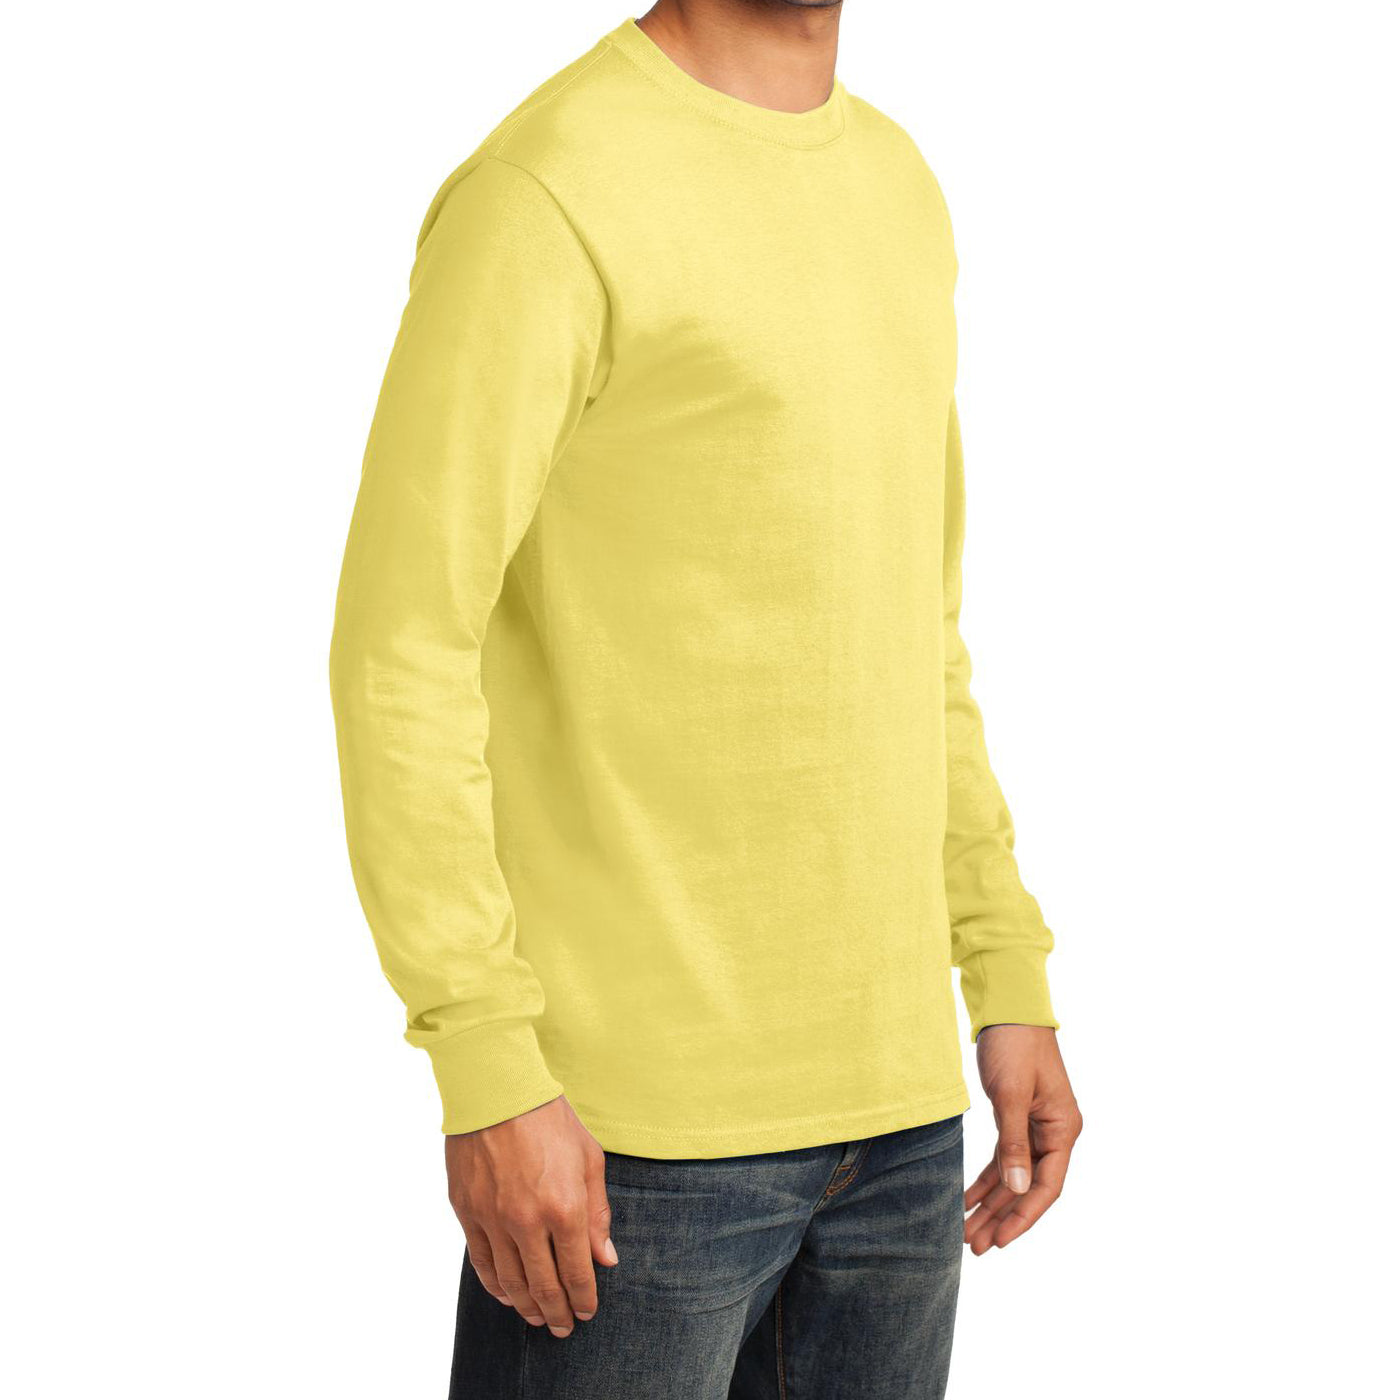 Men's Long Sleeve Essential Tee - Yellow - Side